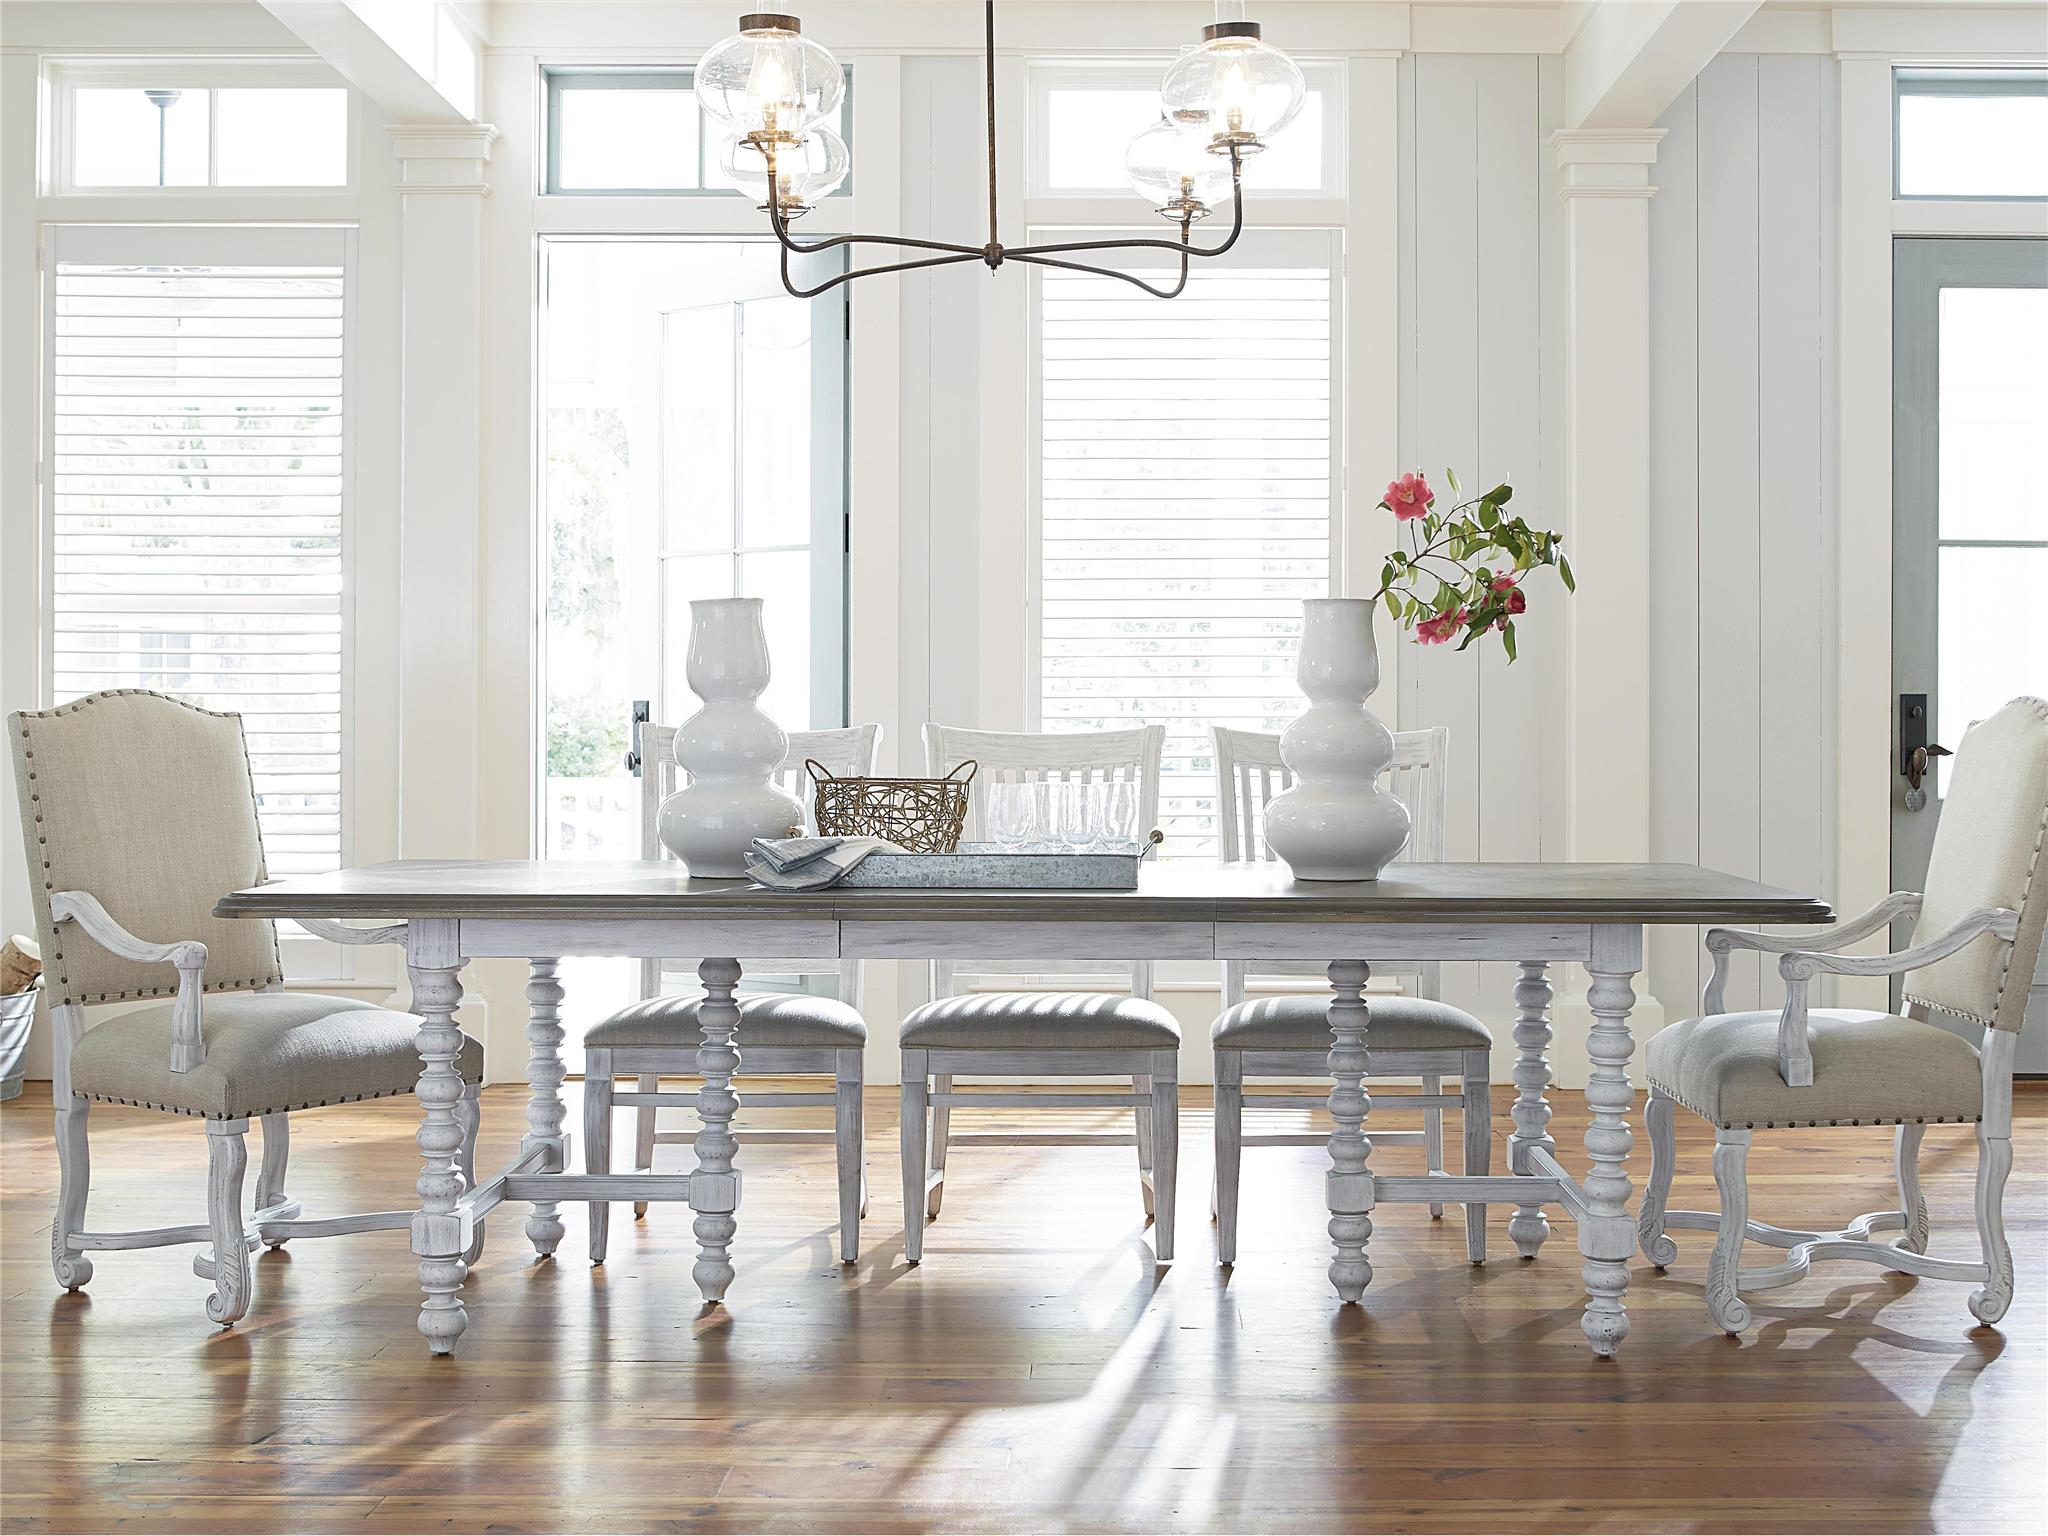 paula deen table and chairs cane swivel chair cushions universal furniture dogwood home dinner loading zoom